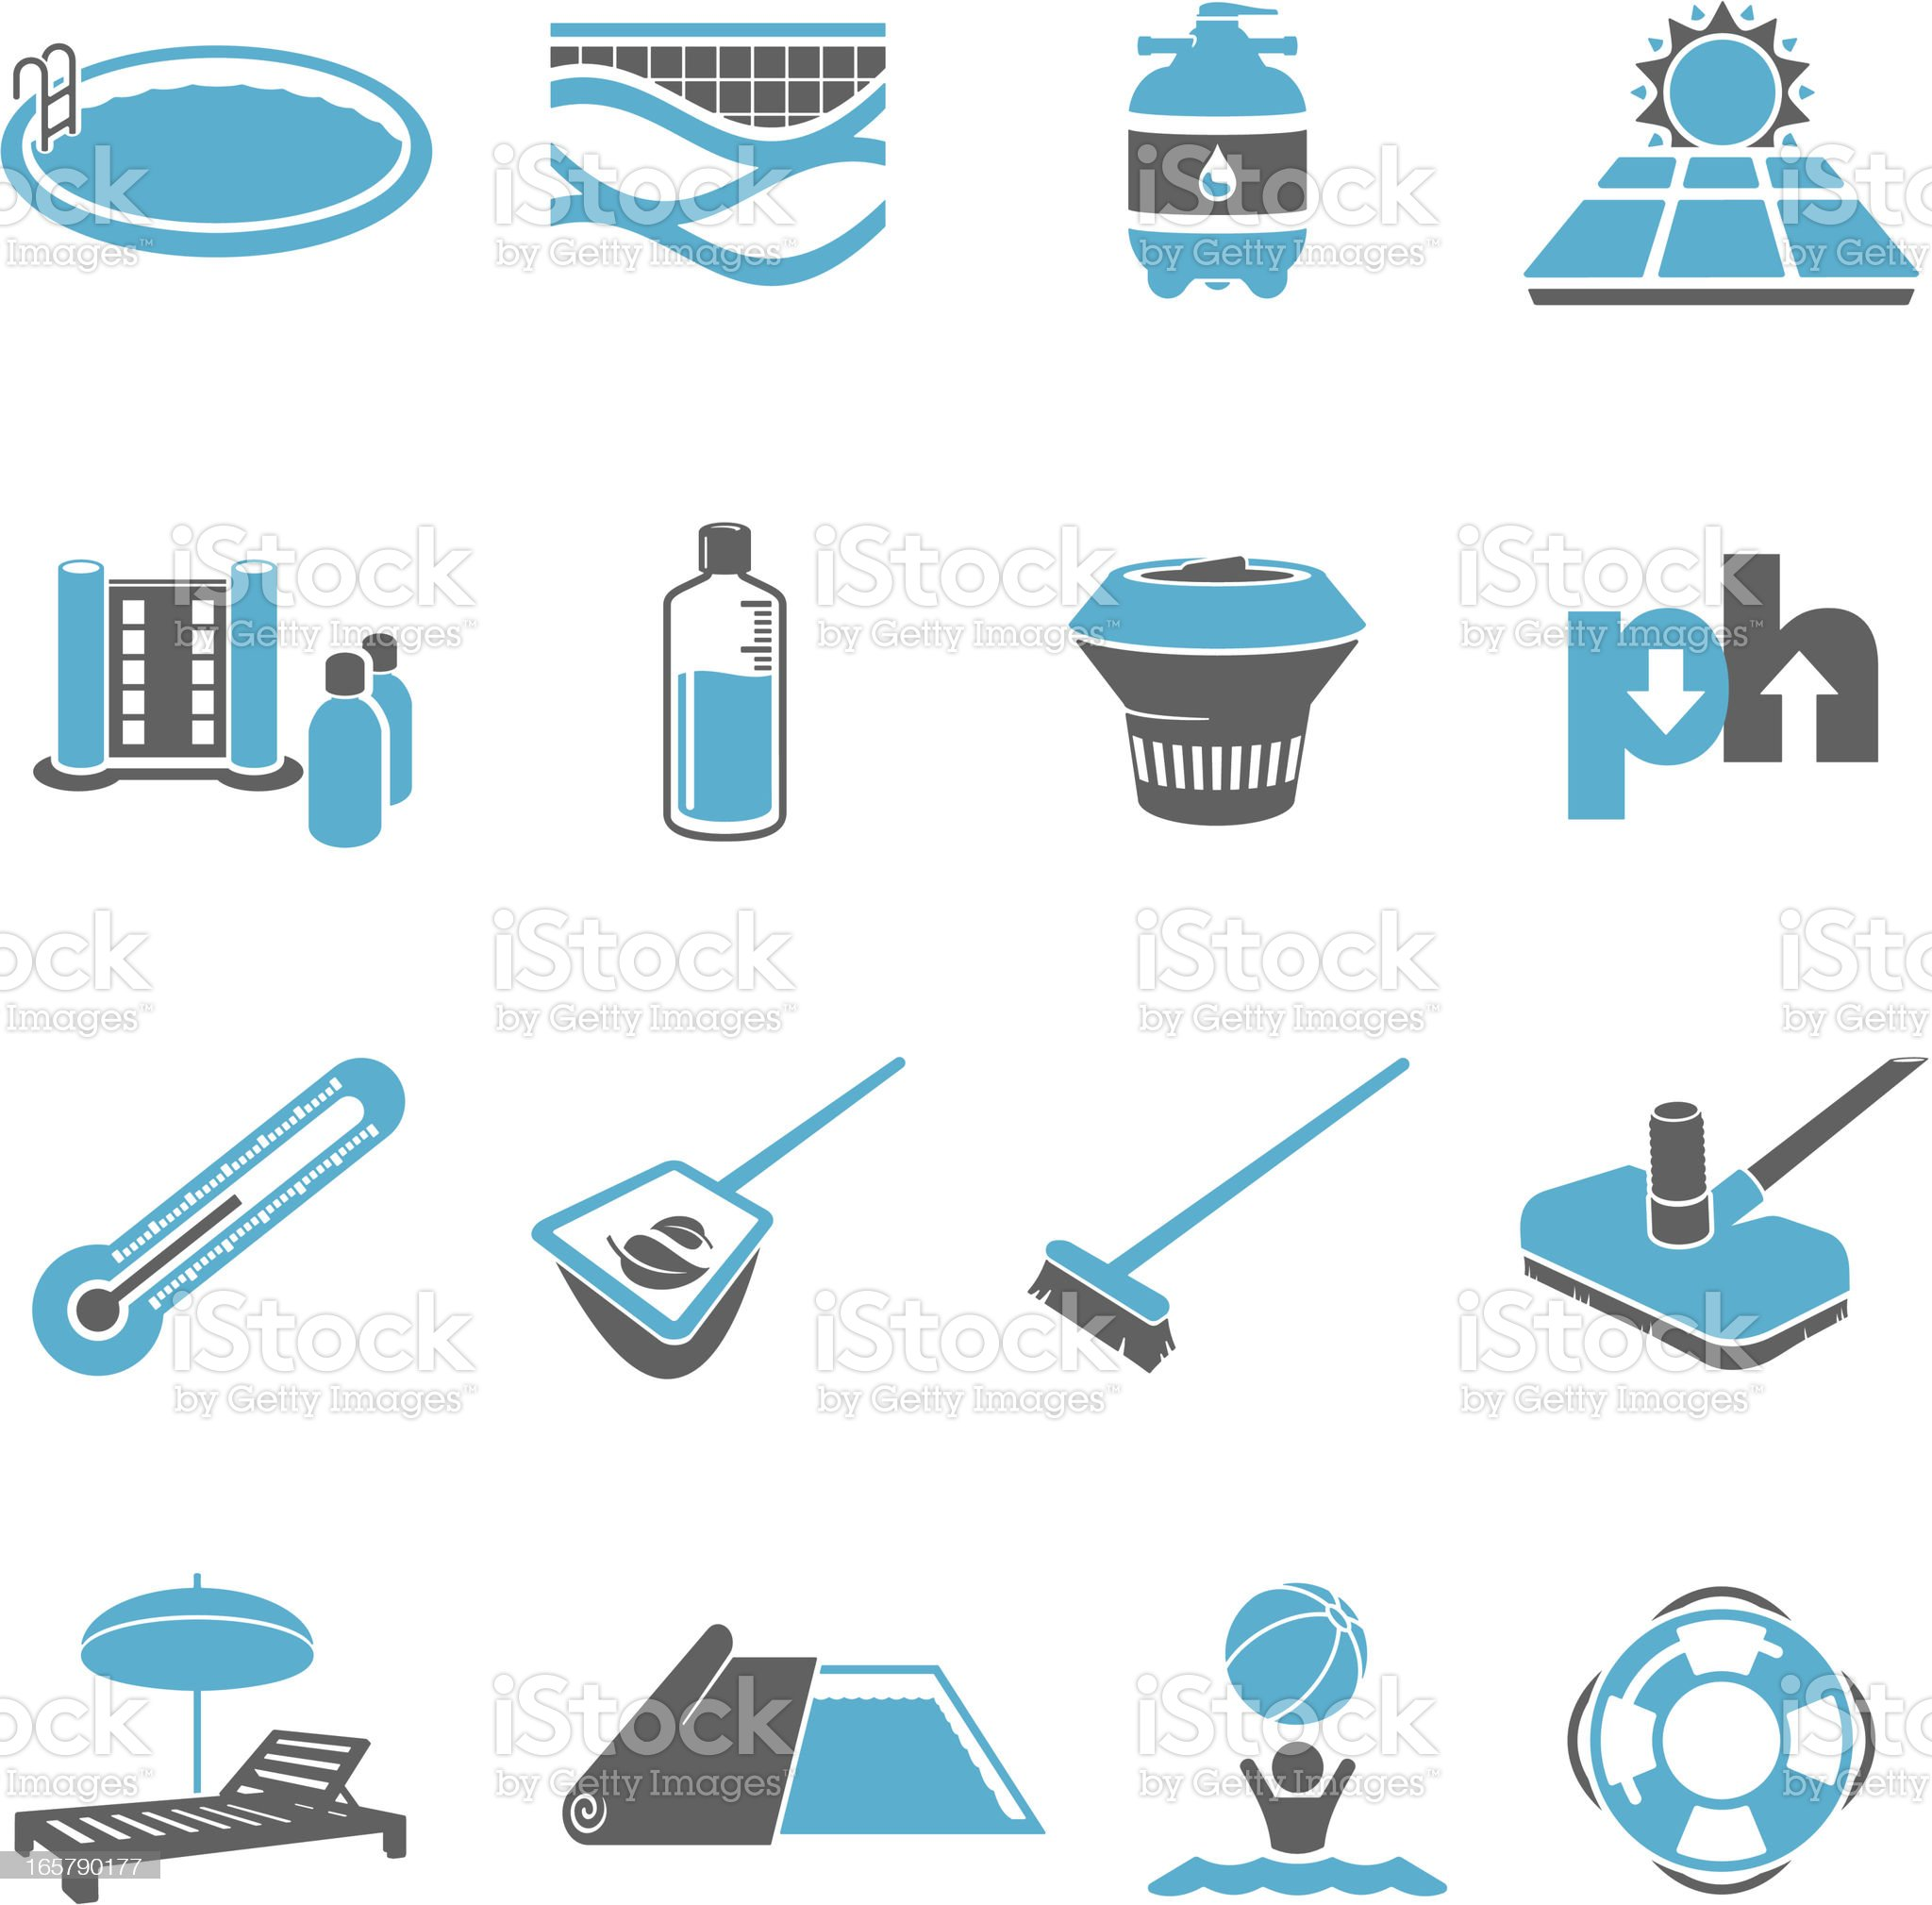 Swimming Pool Maintenance Icon Set royalty-free stock vector art